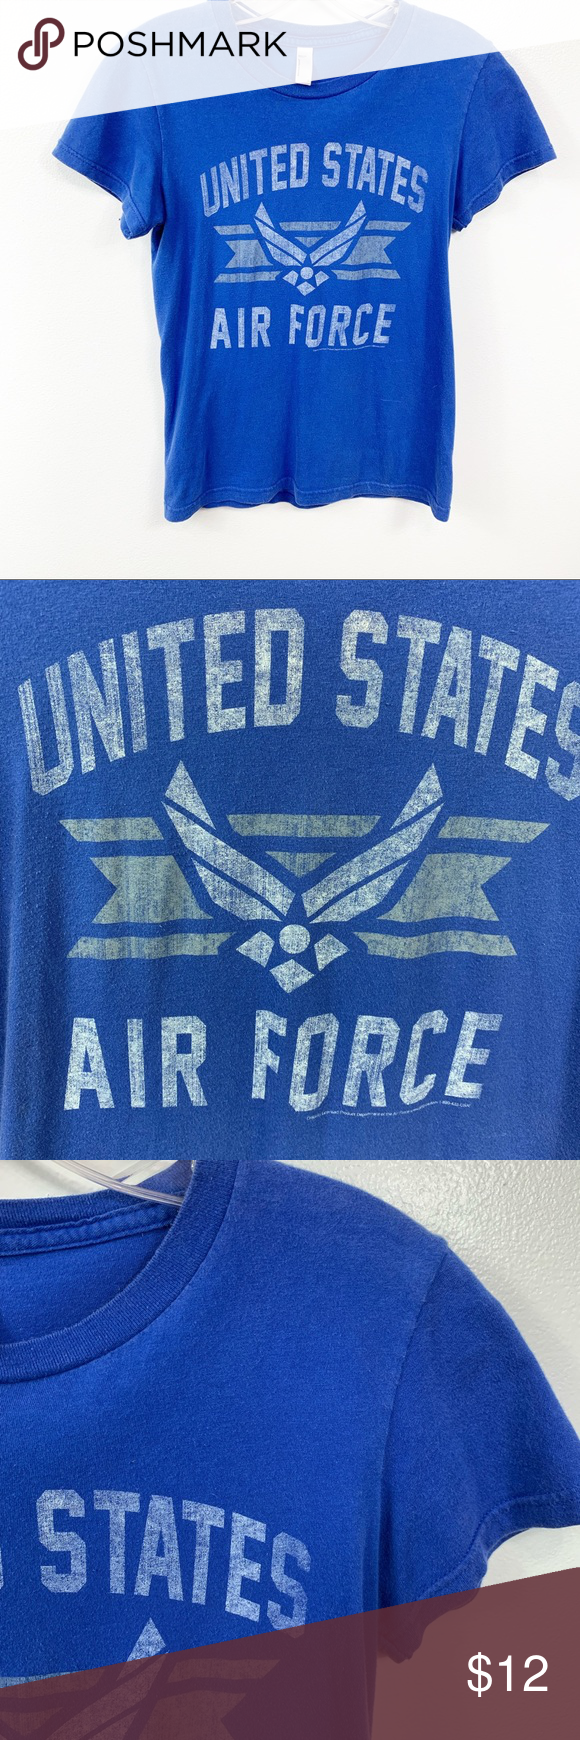 American Apparel United States Air Force Tee Shirt American Apparel Blue And White United States Air Force Graphic Short Sleeve Tee Shirt Size Small  Signs of wear present throughout, loose thread on one arm 06239 American Apparel Tops Tees - Short Sleeve